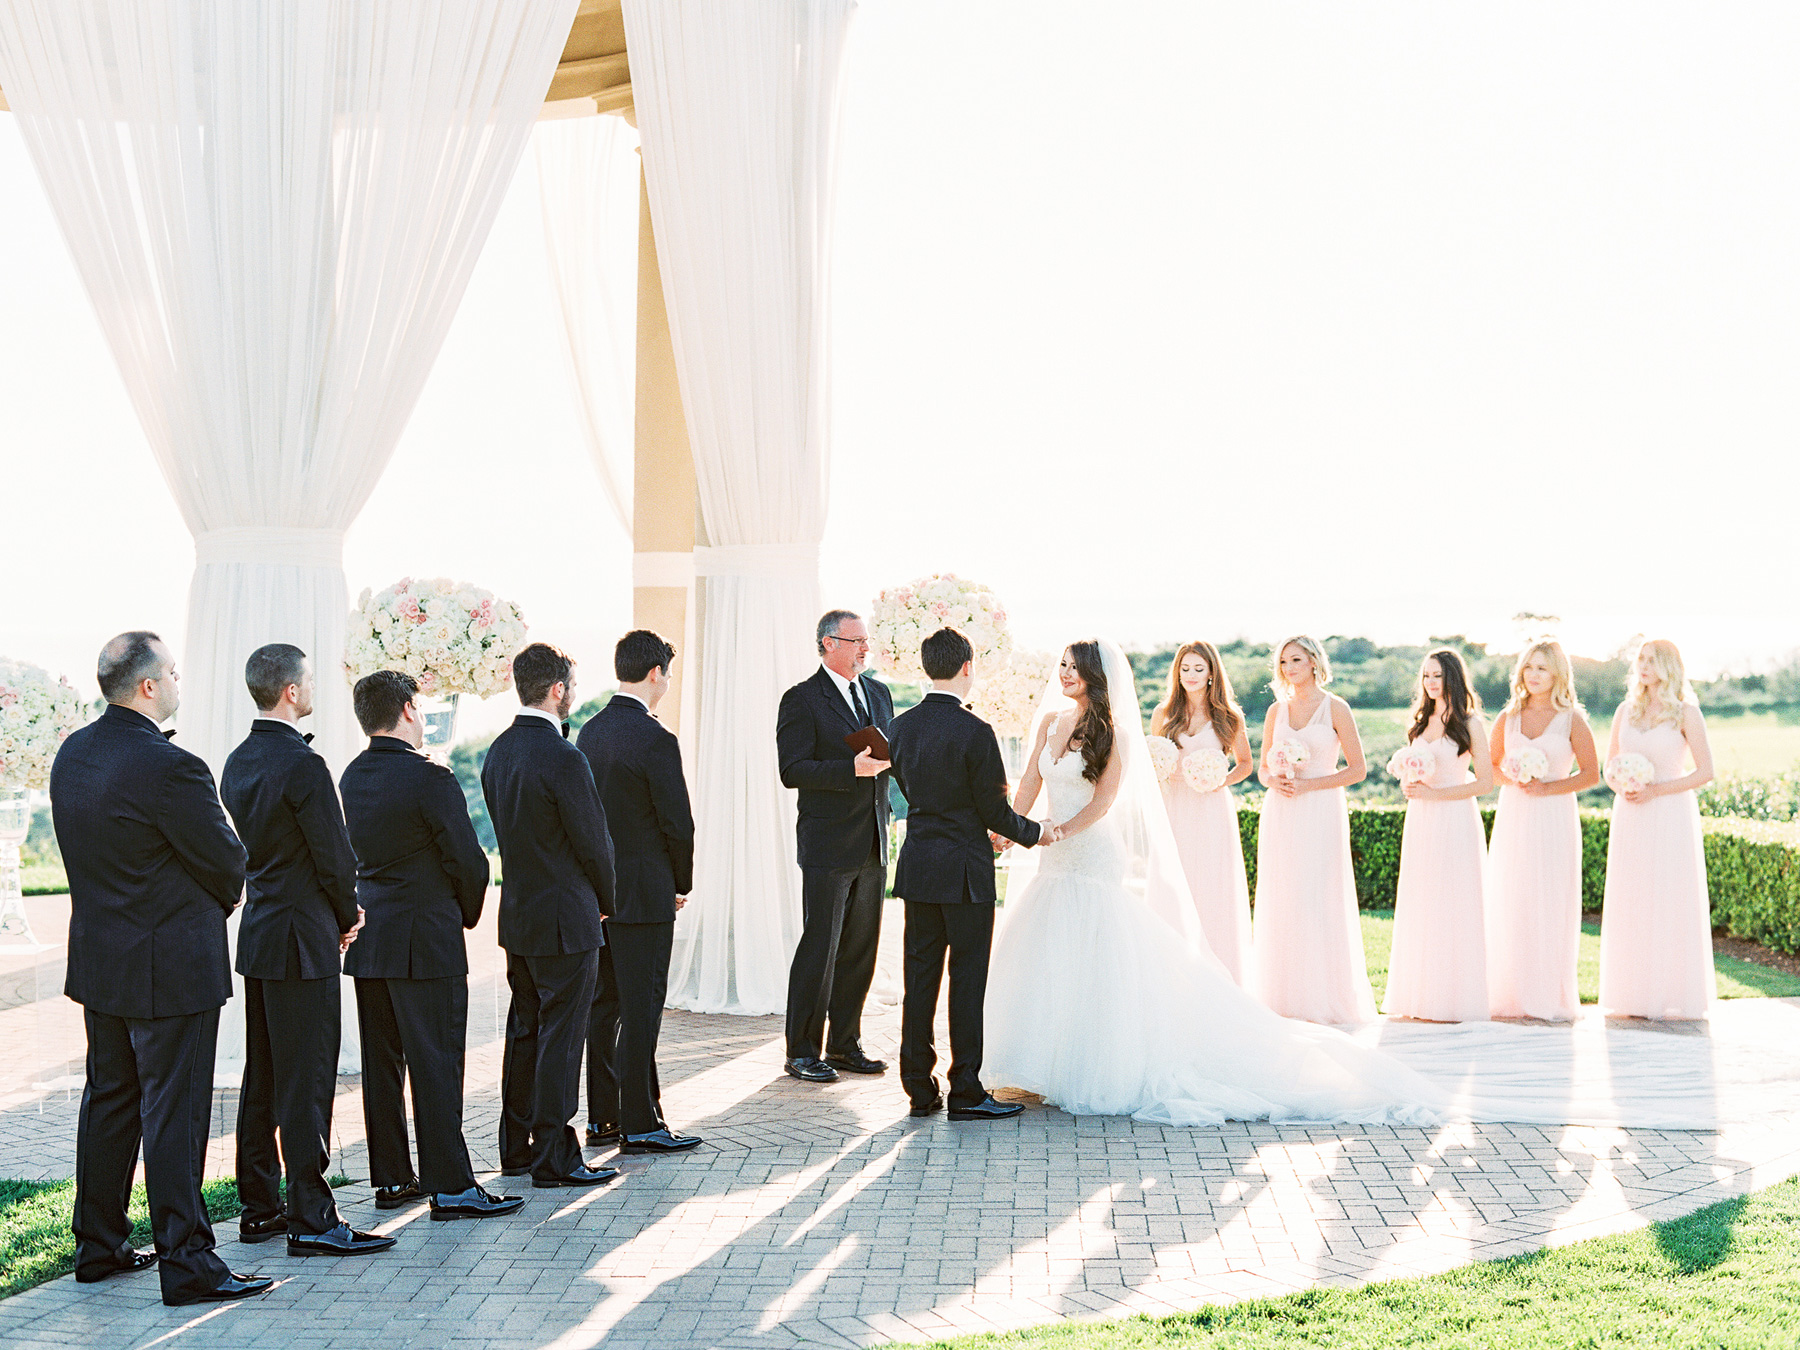 Pelican-hill-wedding-18.JPG